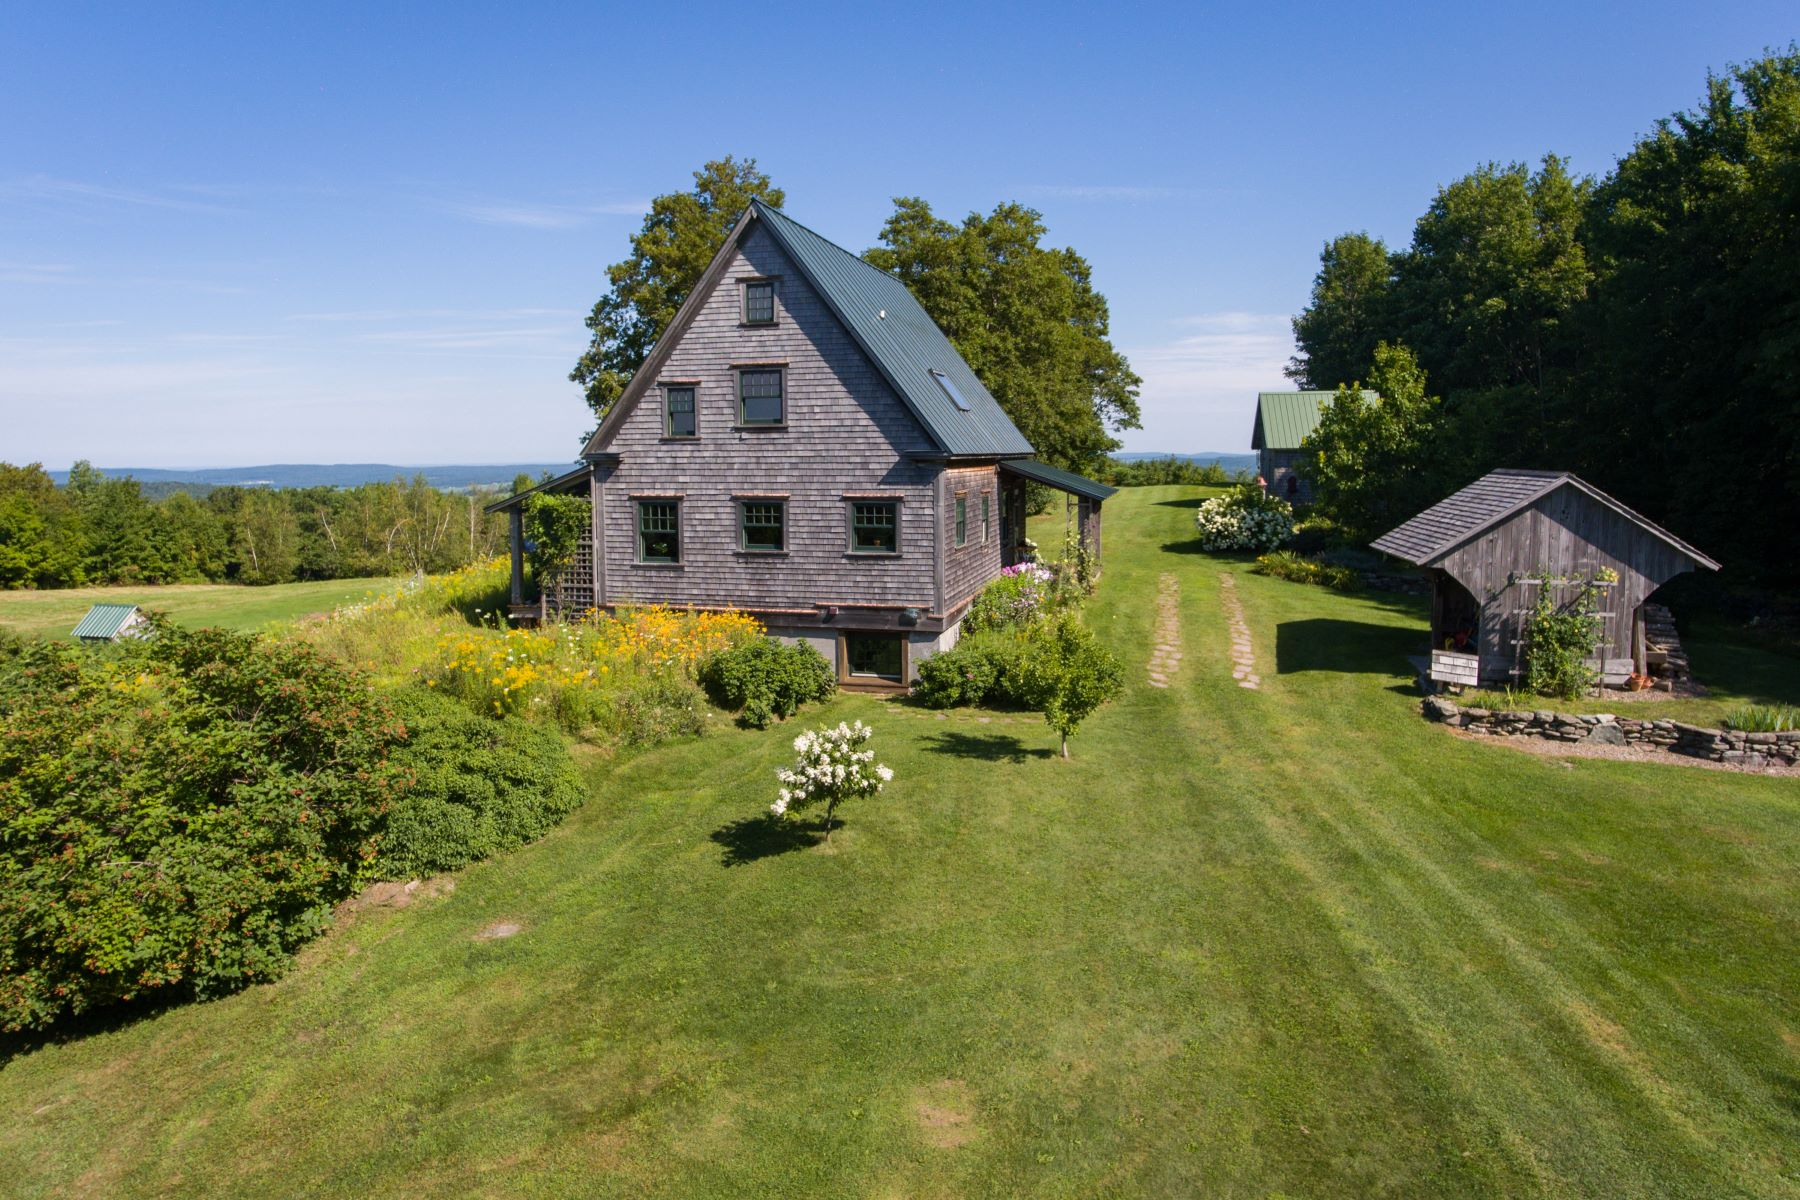 single family homes for Sale at 4523 Duffy Hill Road, Fairfield 4523 Duffy Hill Rd Fairfield, Vermont 05455 United States